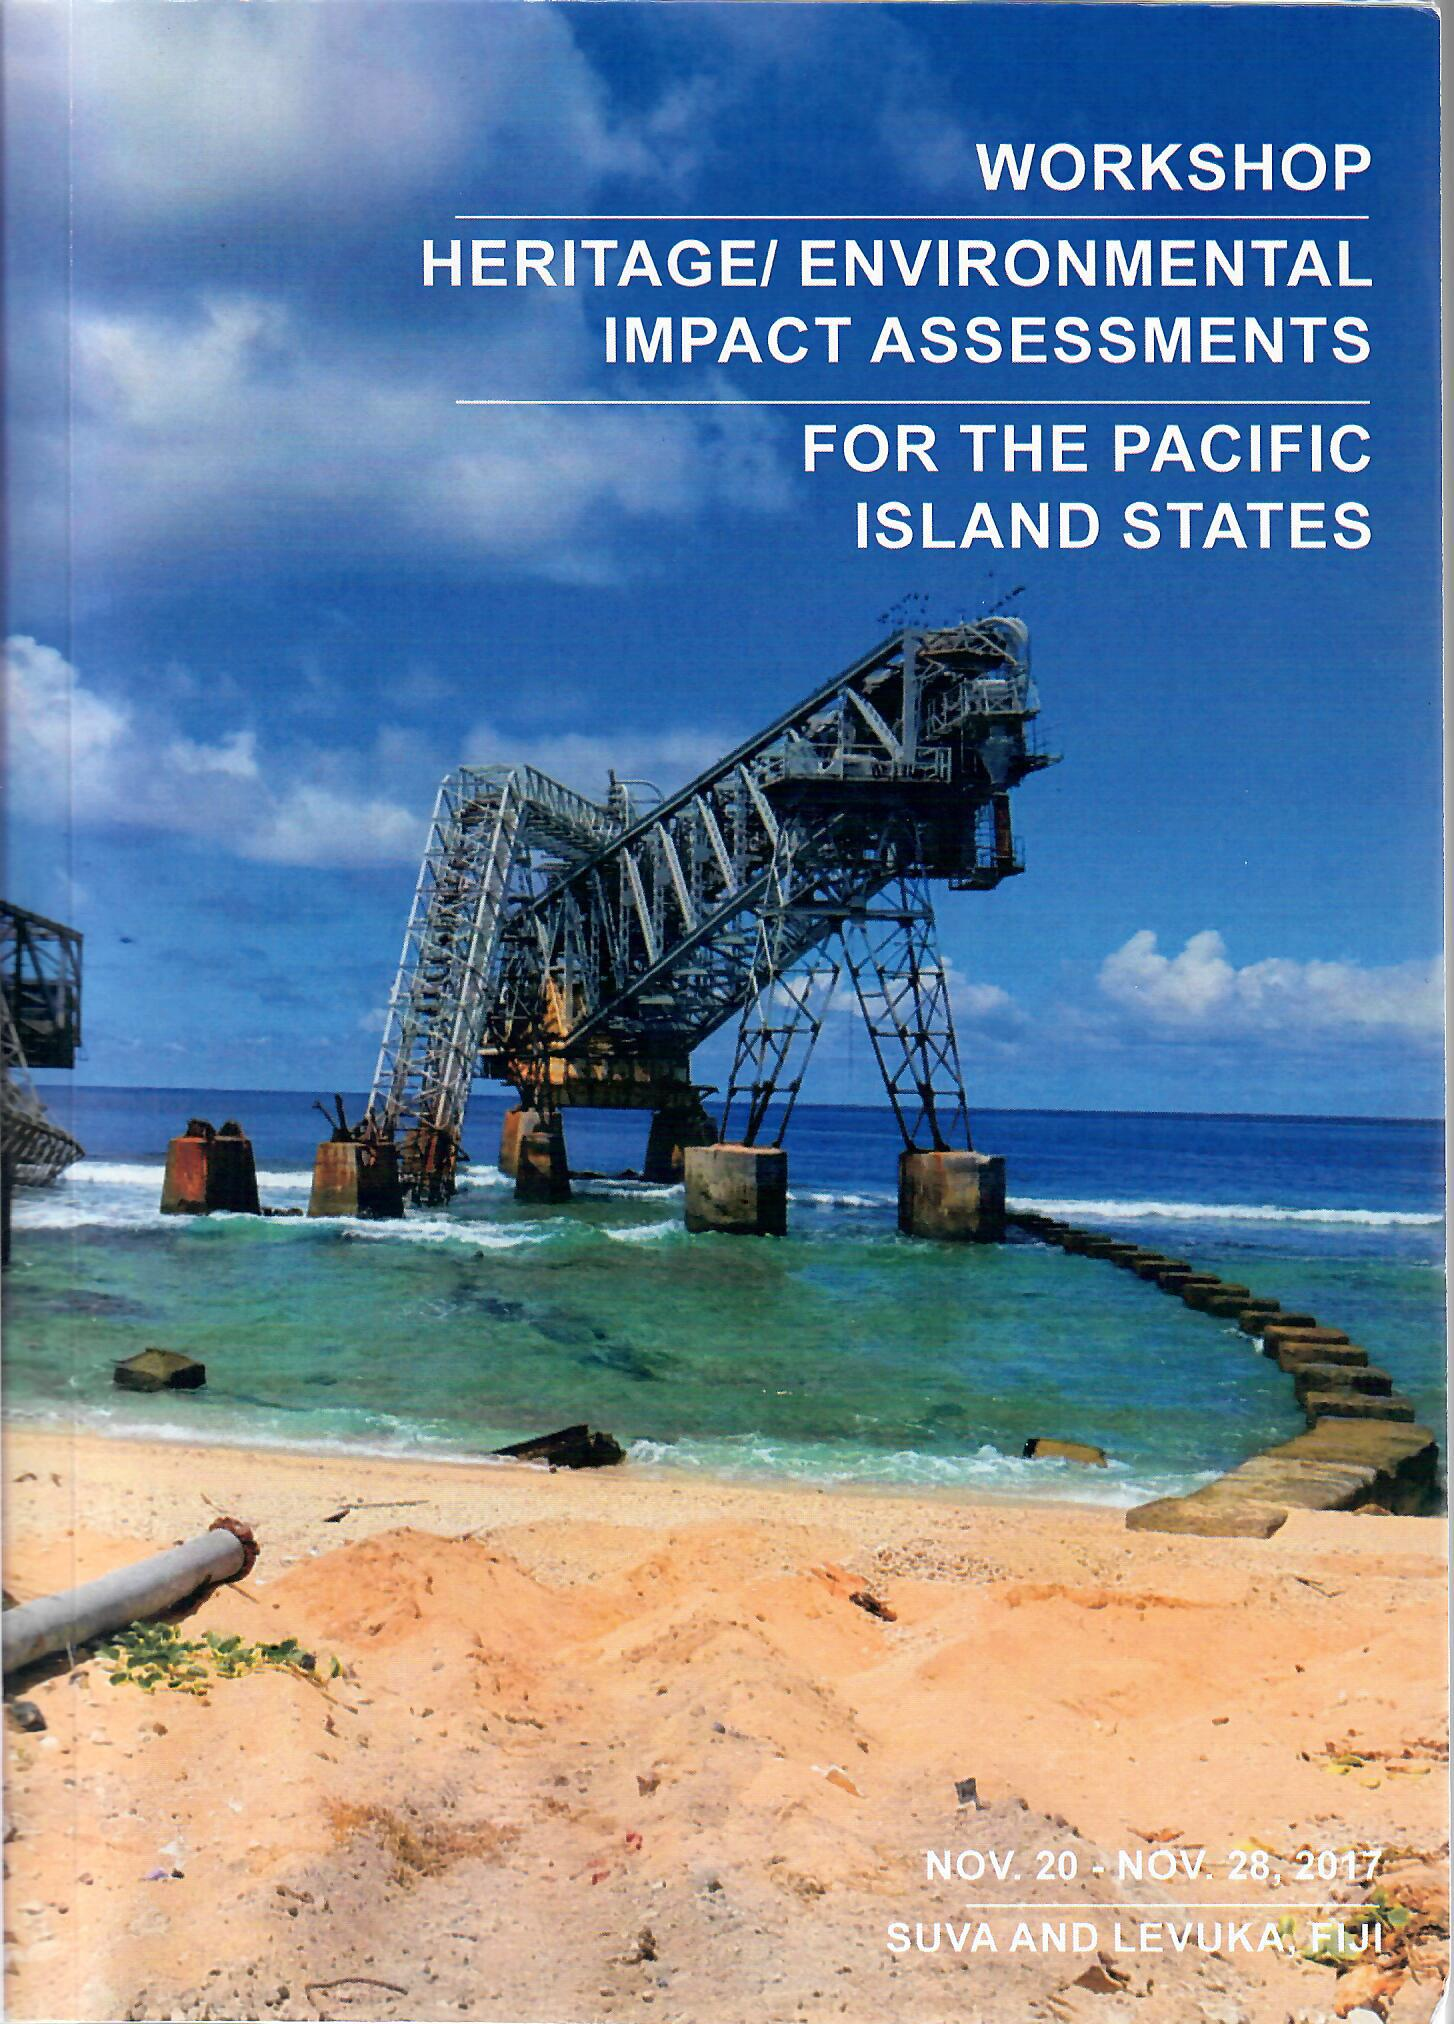 HERITAGE/ENVIRONMENTAL IMPACT ASSESSMENTS FOR THE PACIFIC ISLAND STATES